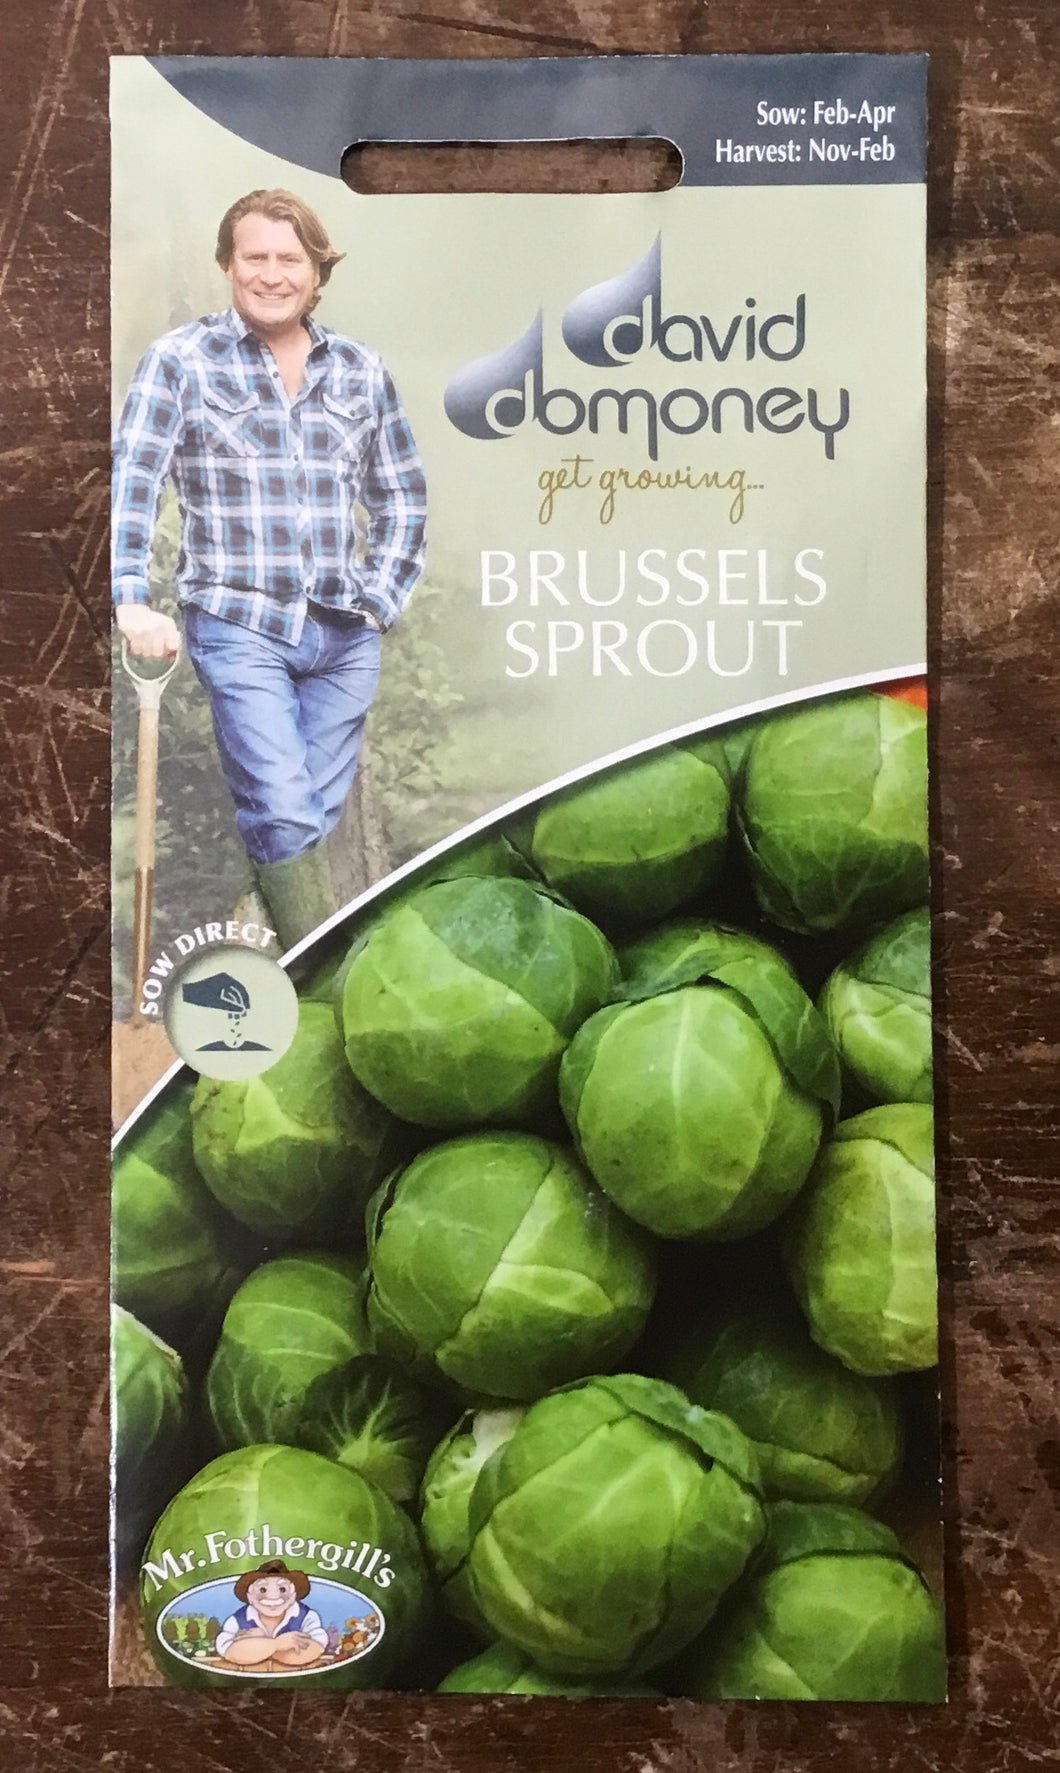 Brussels Sprout Brest F1 - David Domoney Vegetables